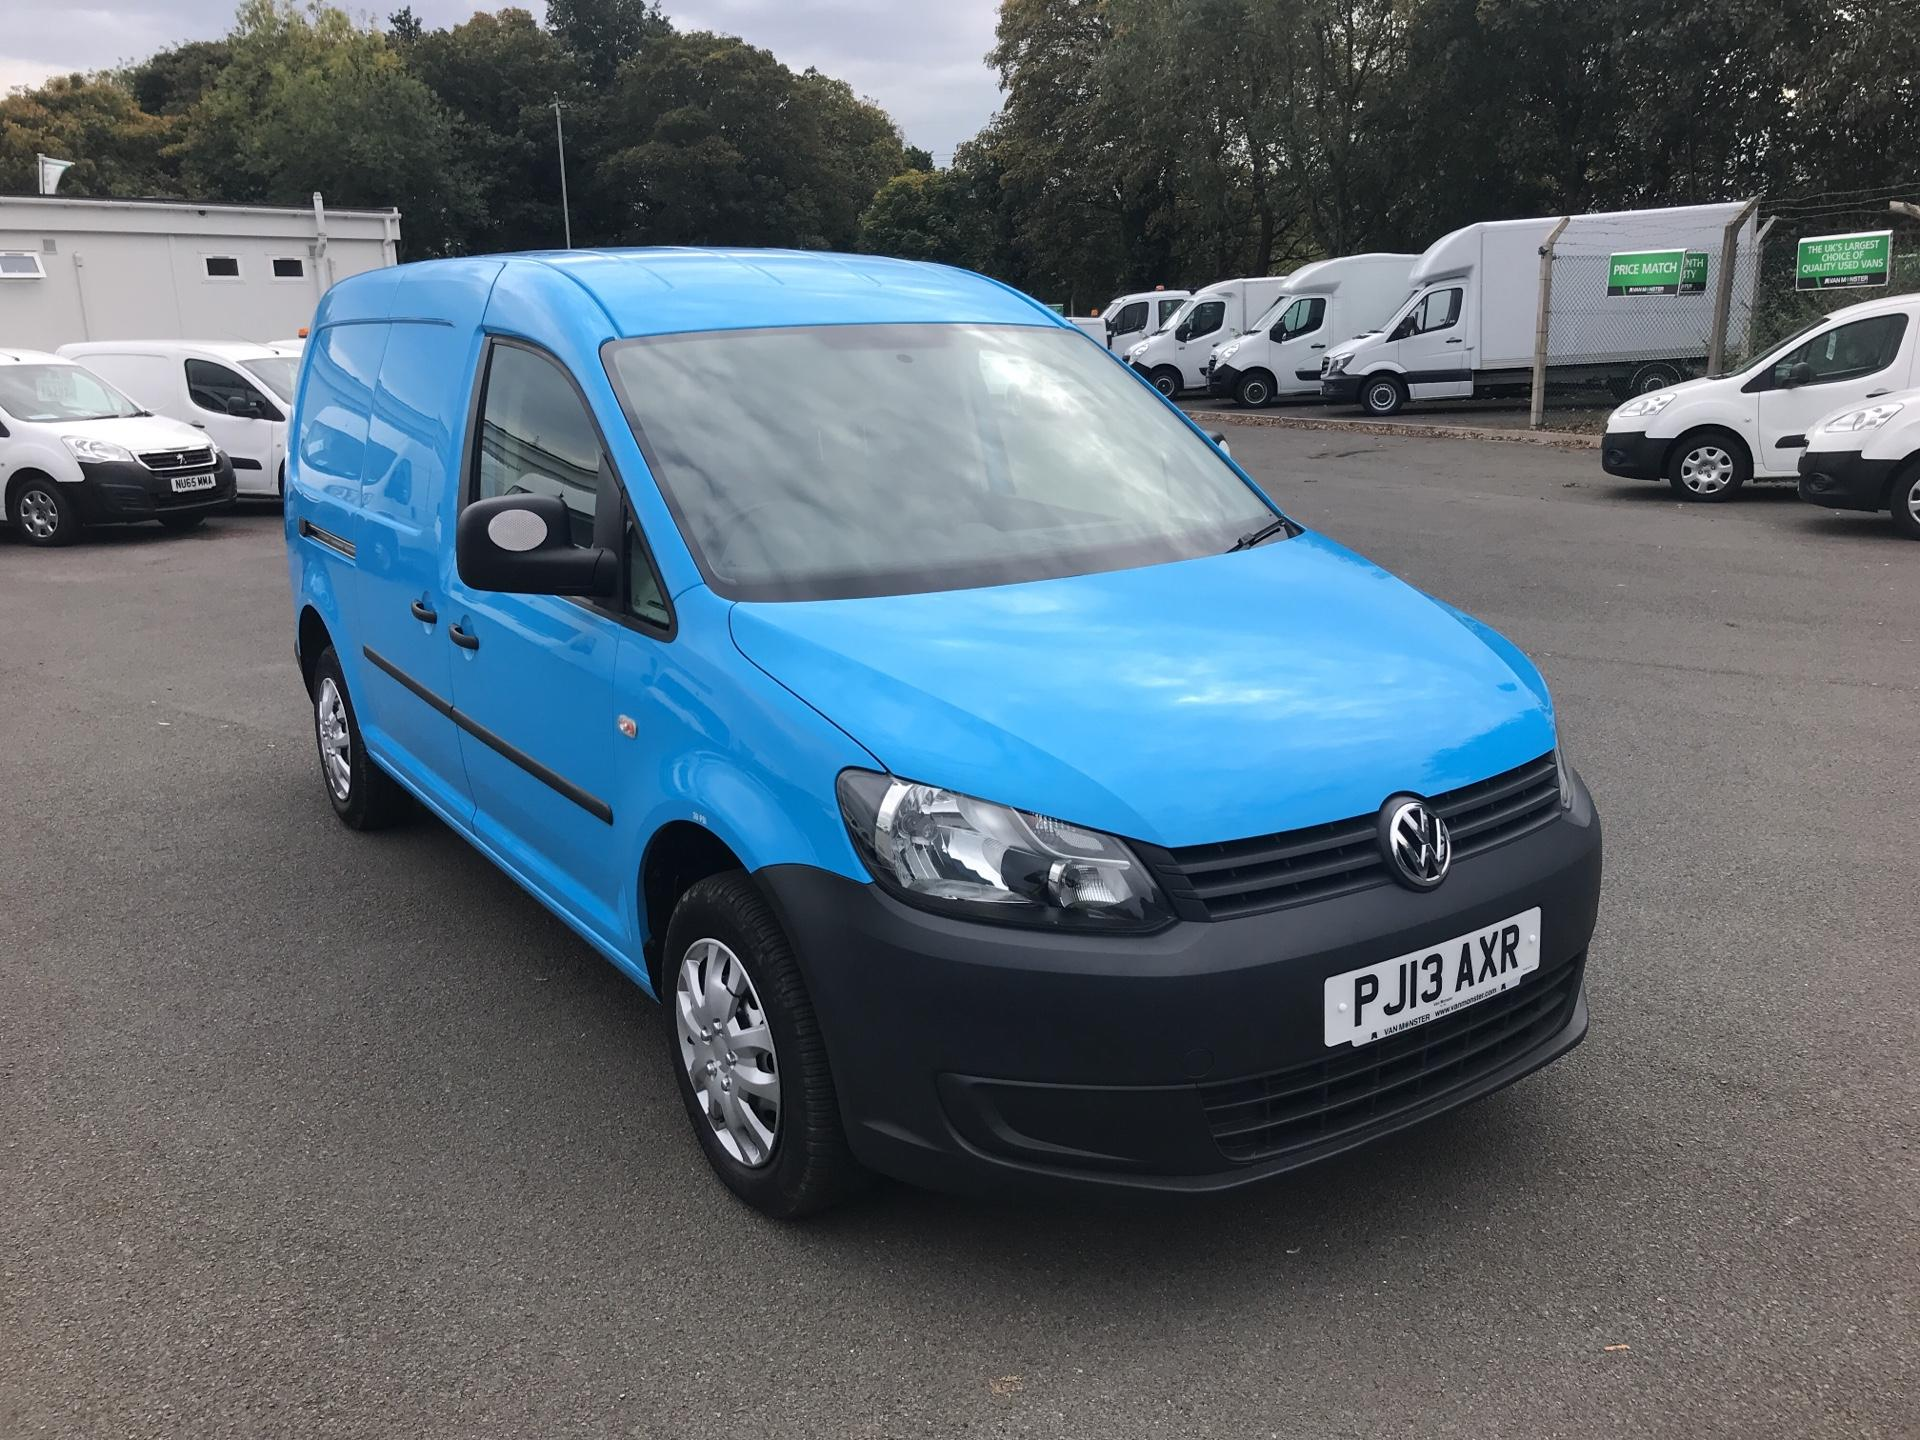 2013 Volkswagen Caddy Maxi  1.6 102PS EURO 5 (PJ13AXR)